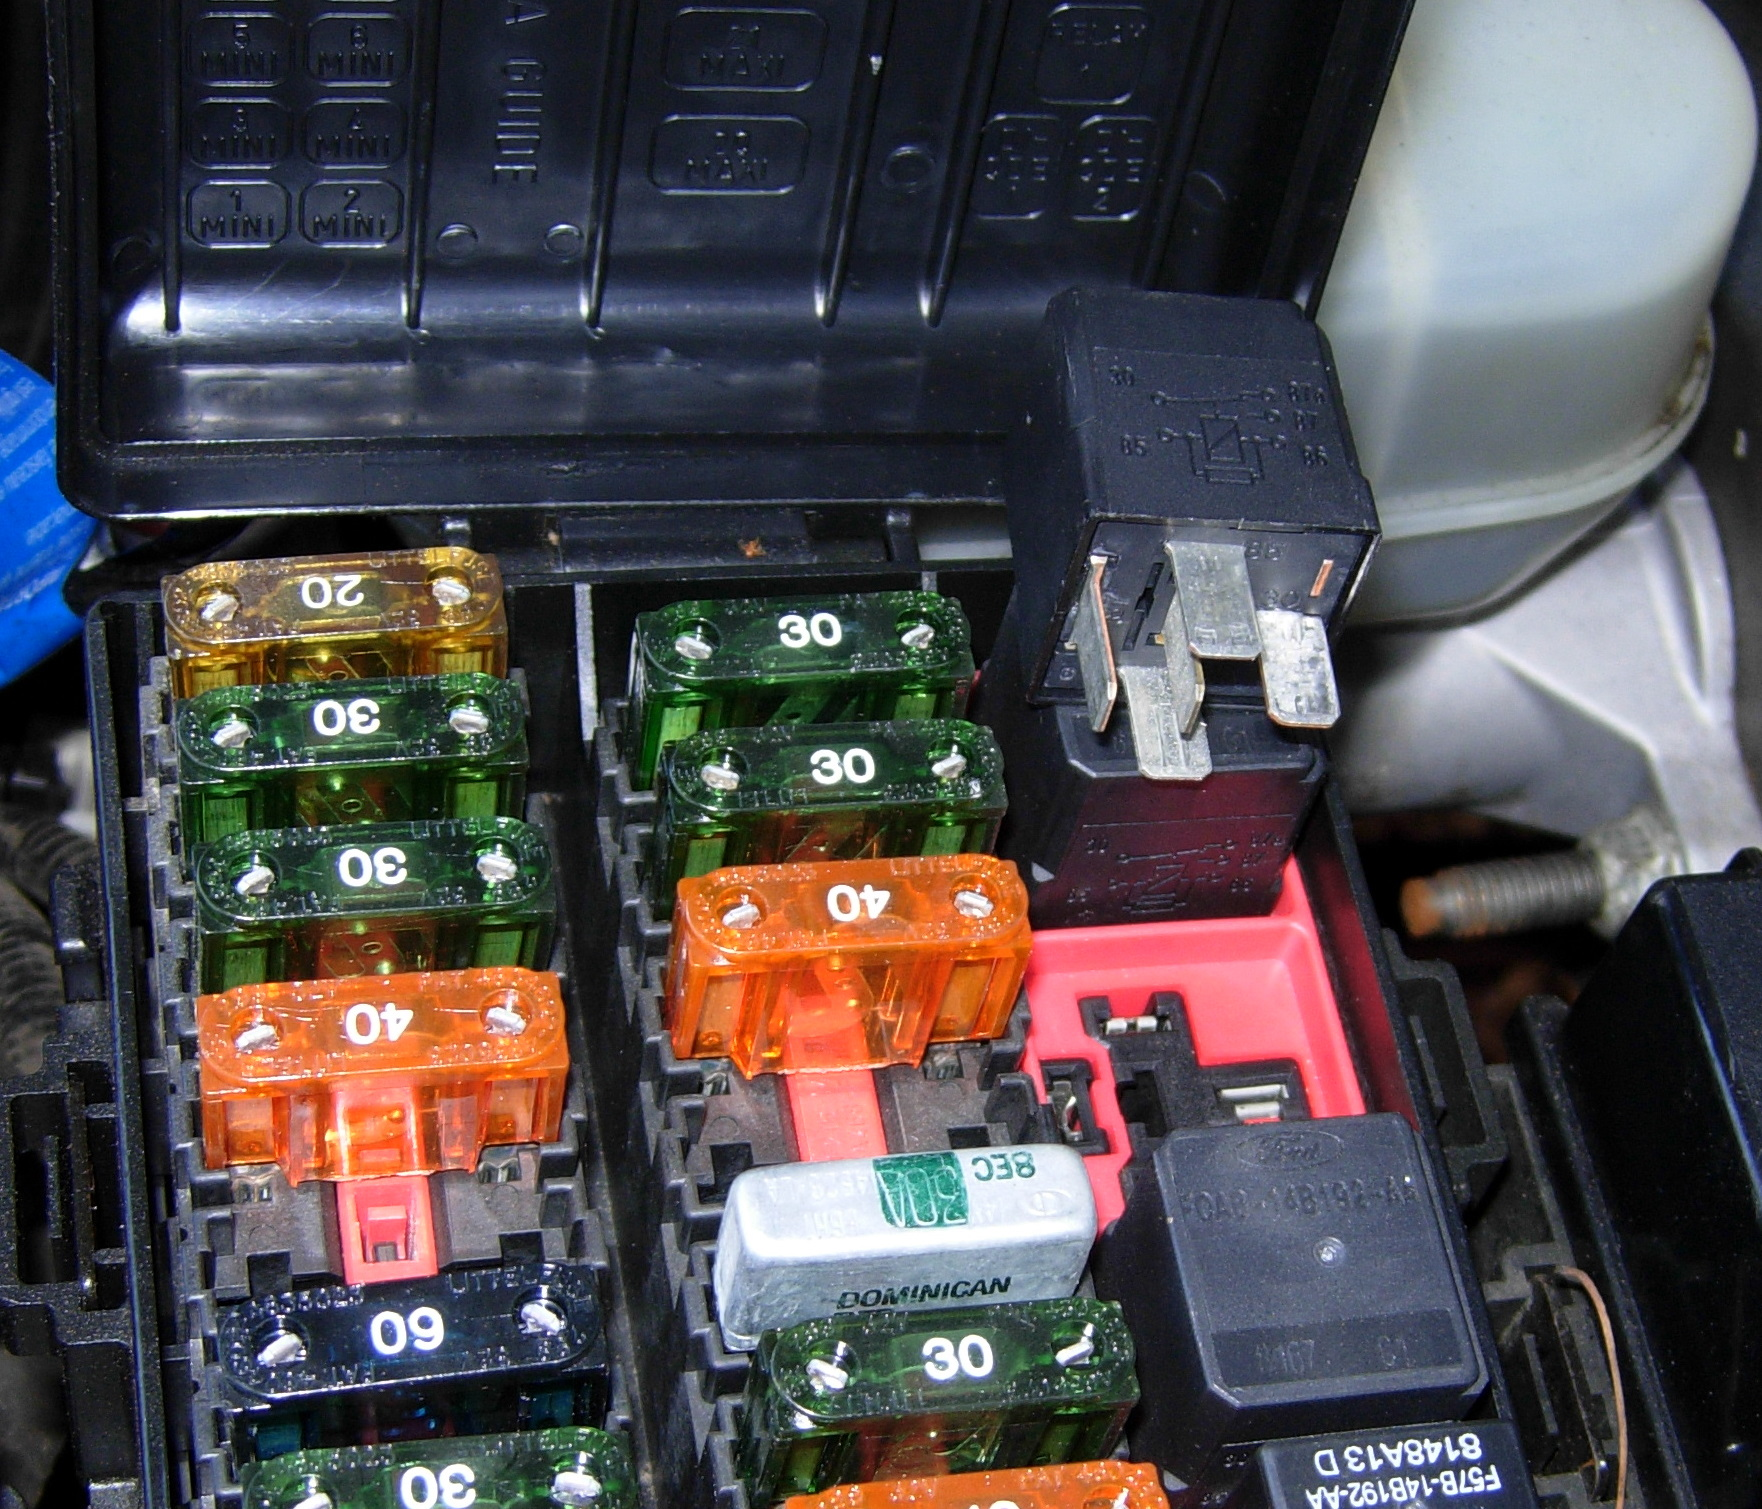 98 F150 Starter Relay Ford F 150 Wiring Cruisecontrol Fuse Location